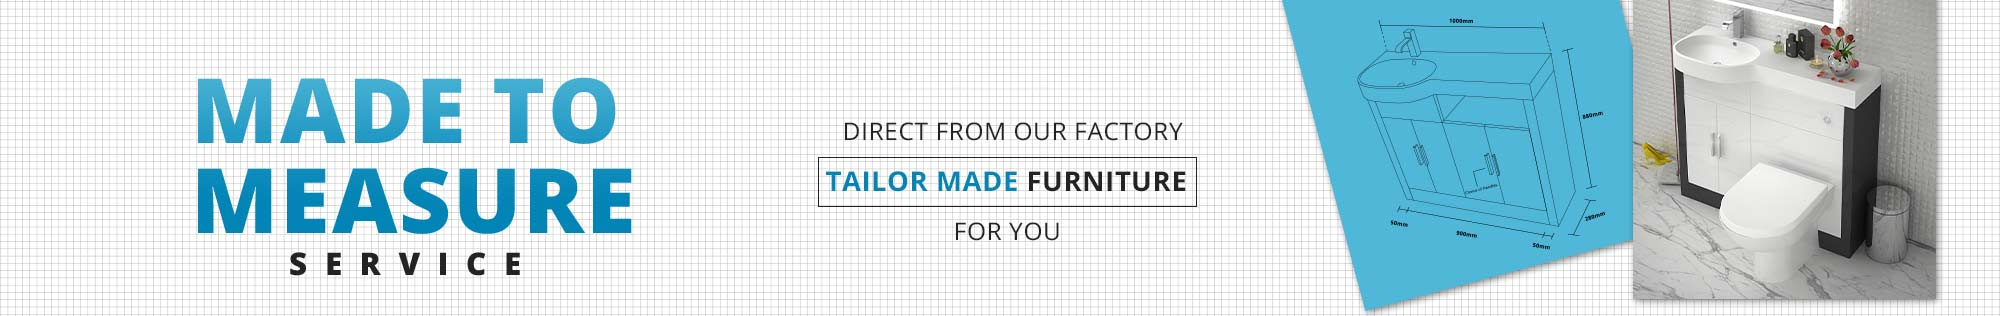 Made to measure service - Direct from our factory - Tailor made furniture for you